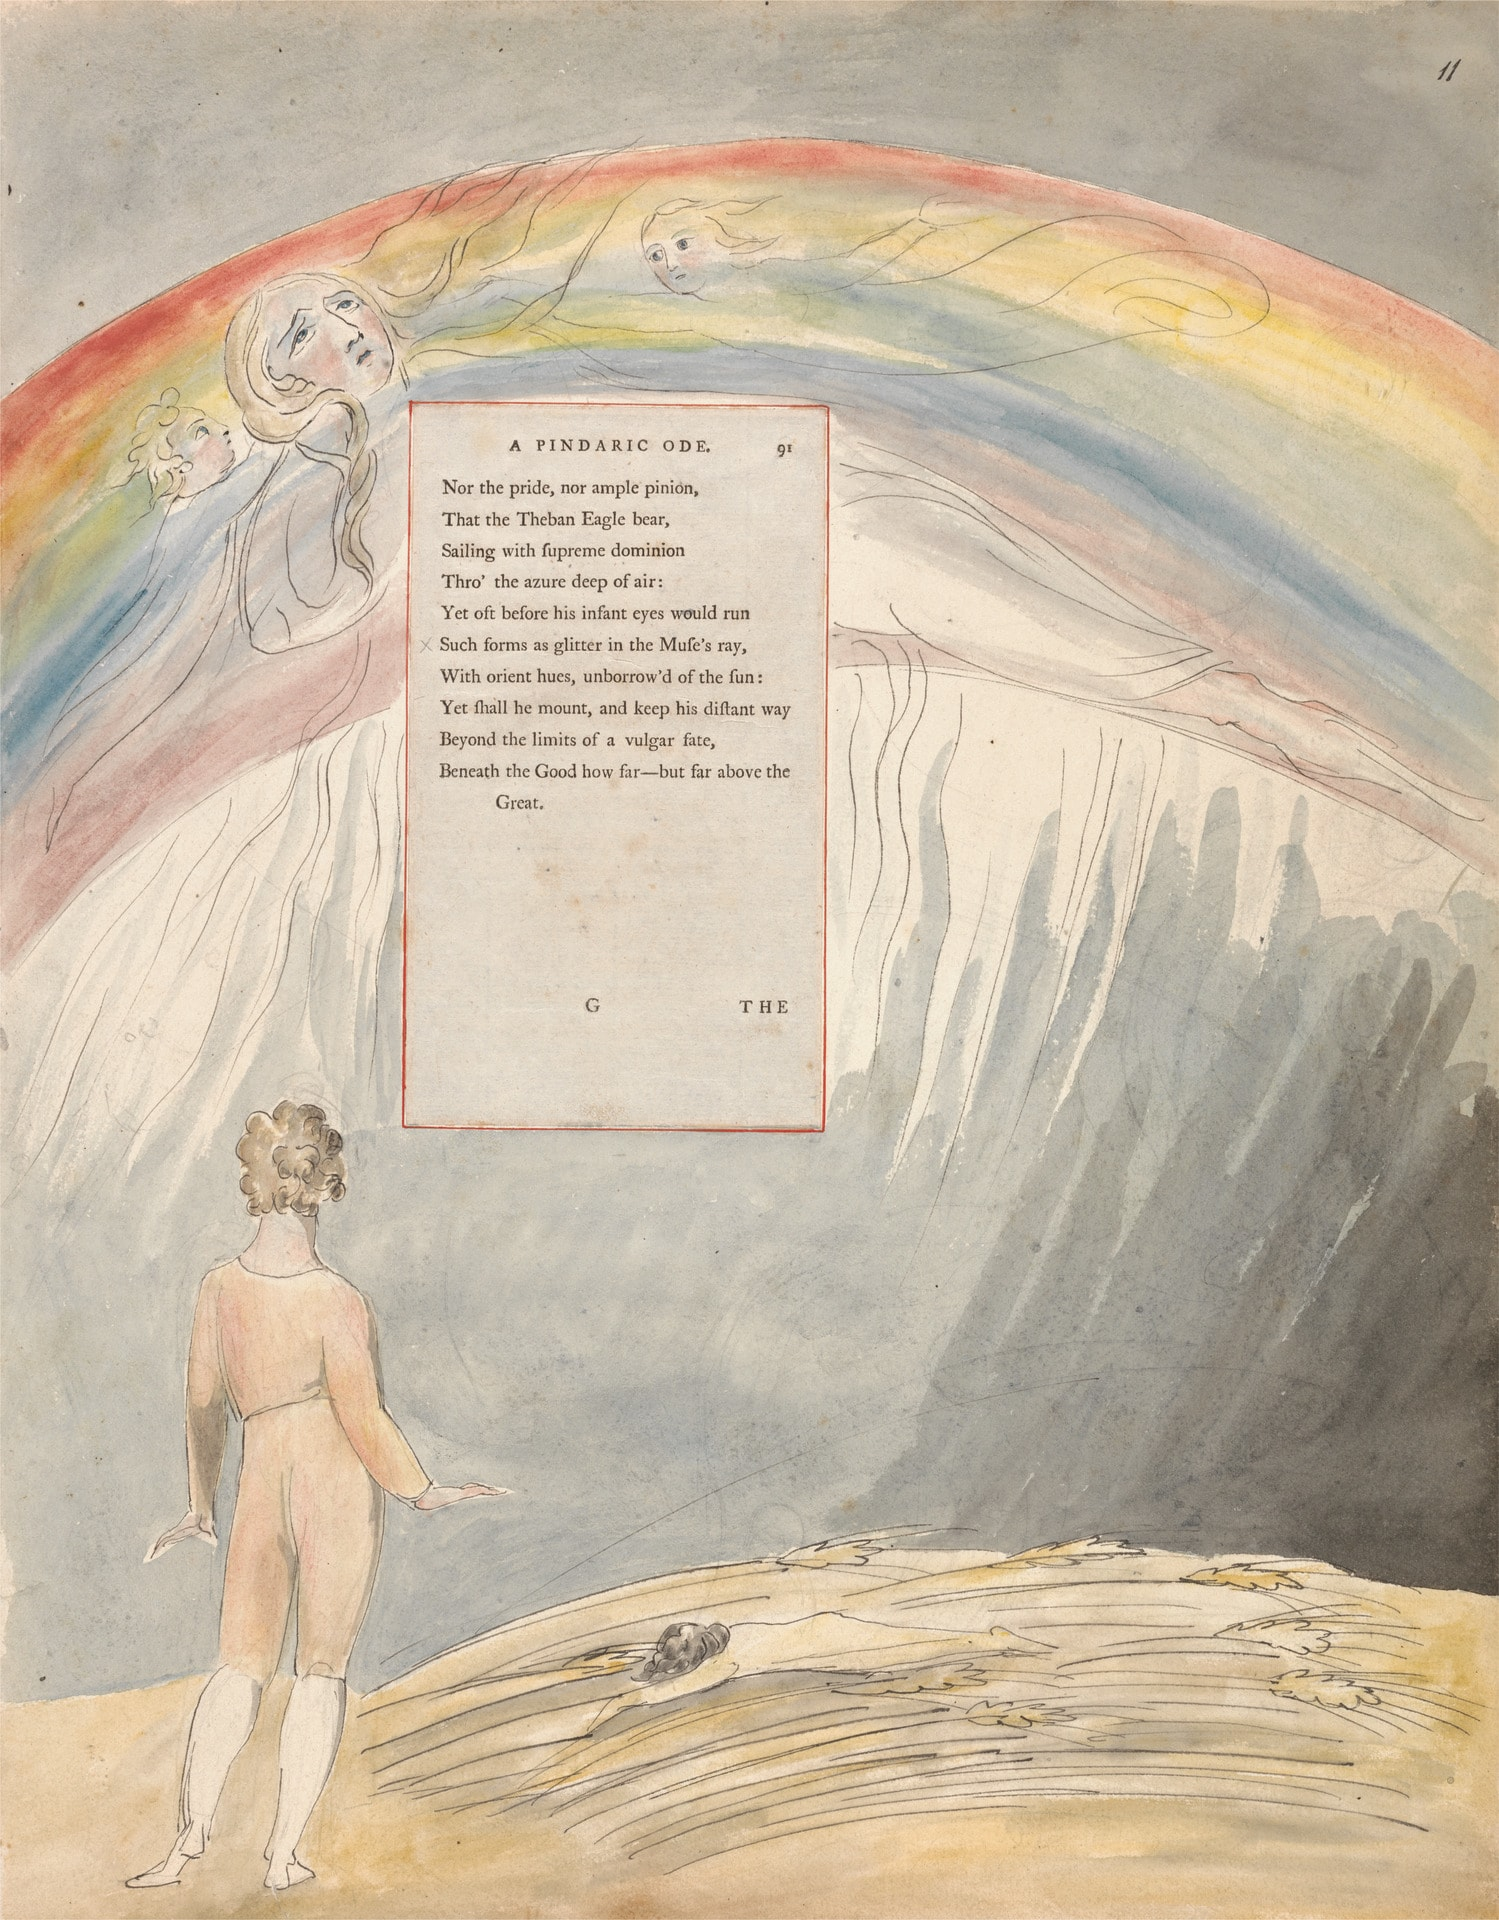 Poem by William Blake and rainbow illustration in background.